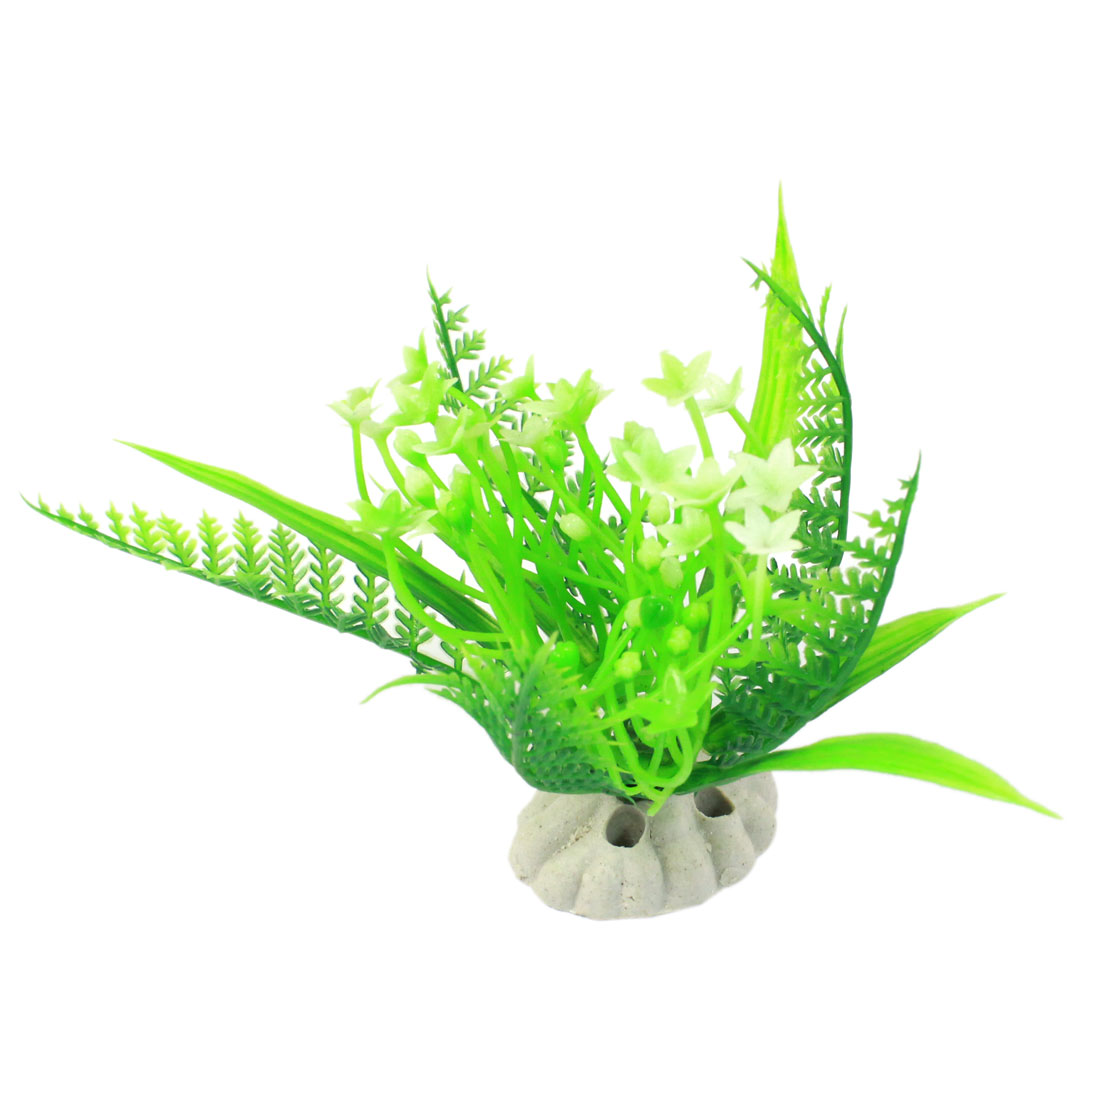 "4"" Height Green Landscaping Simulated Manmade Artificial Aquatic Grass Plant Ornament for Aquarium"